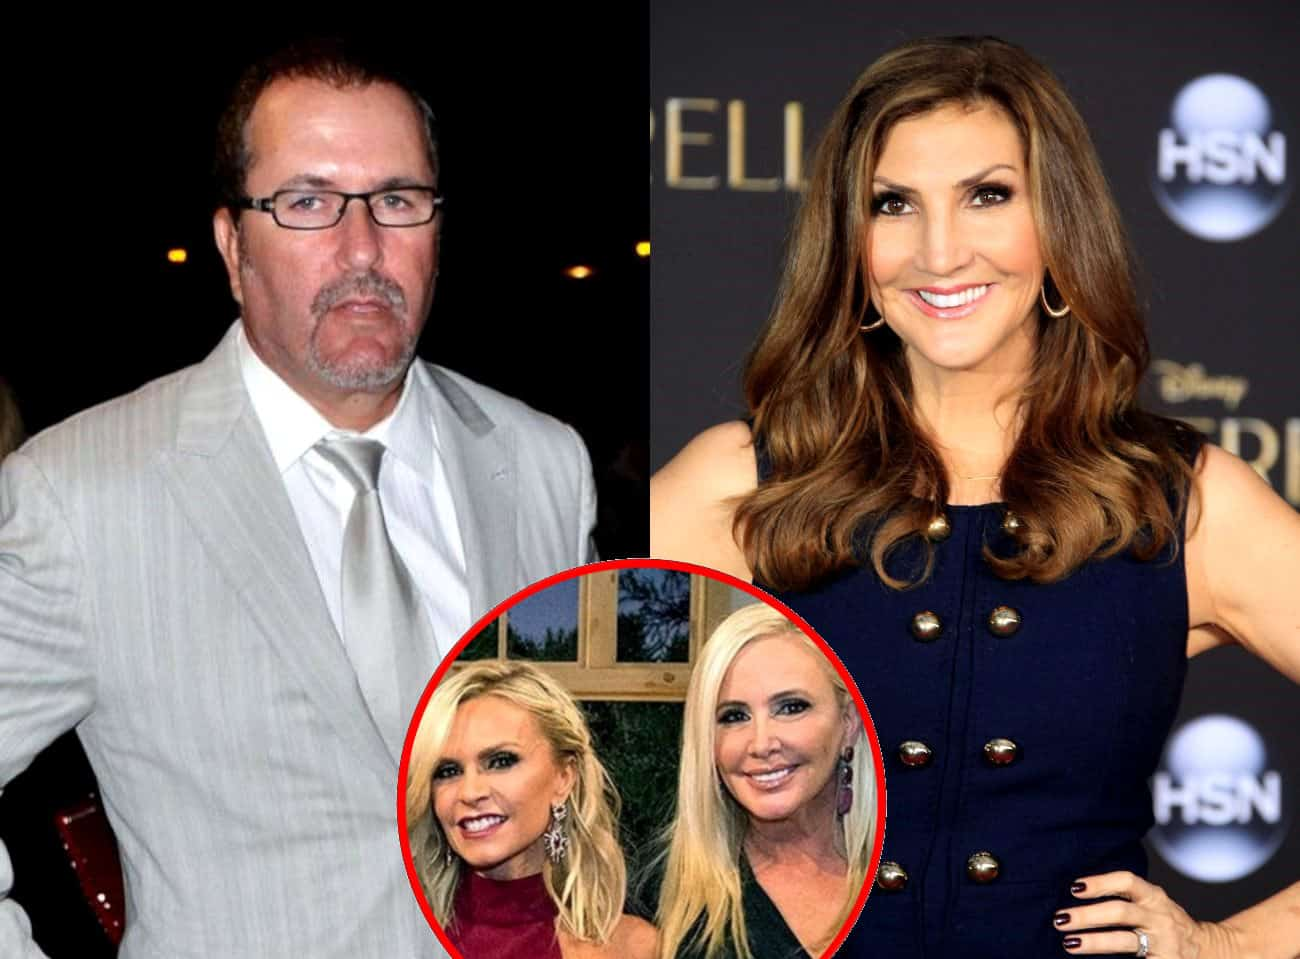 Ex RHOC Star Jim Bellino Sues Heather McDonald for $1 Million in Defamation Lawsuit Over Tamra and Shannon's Comments